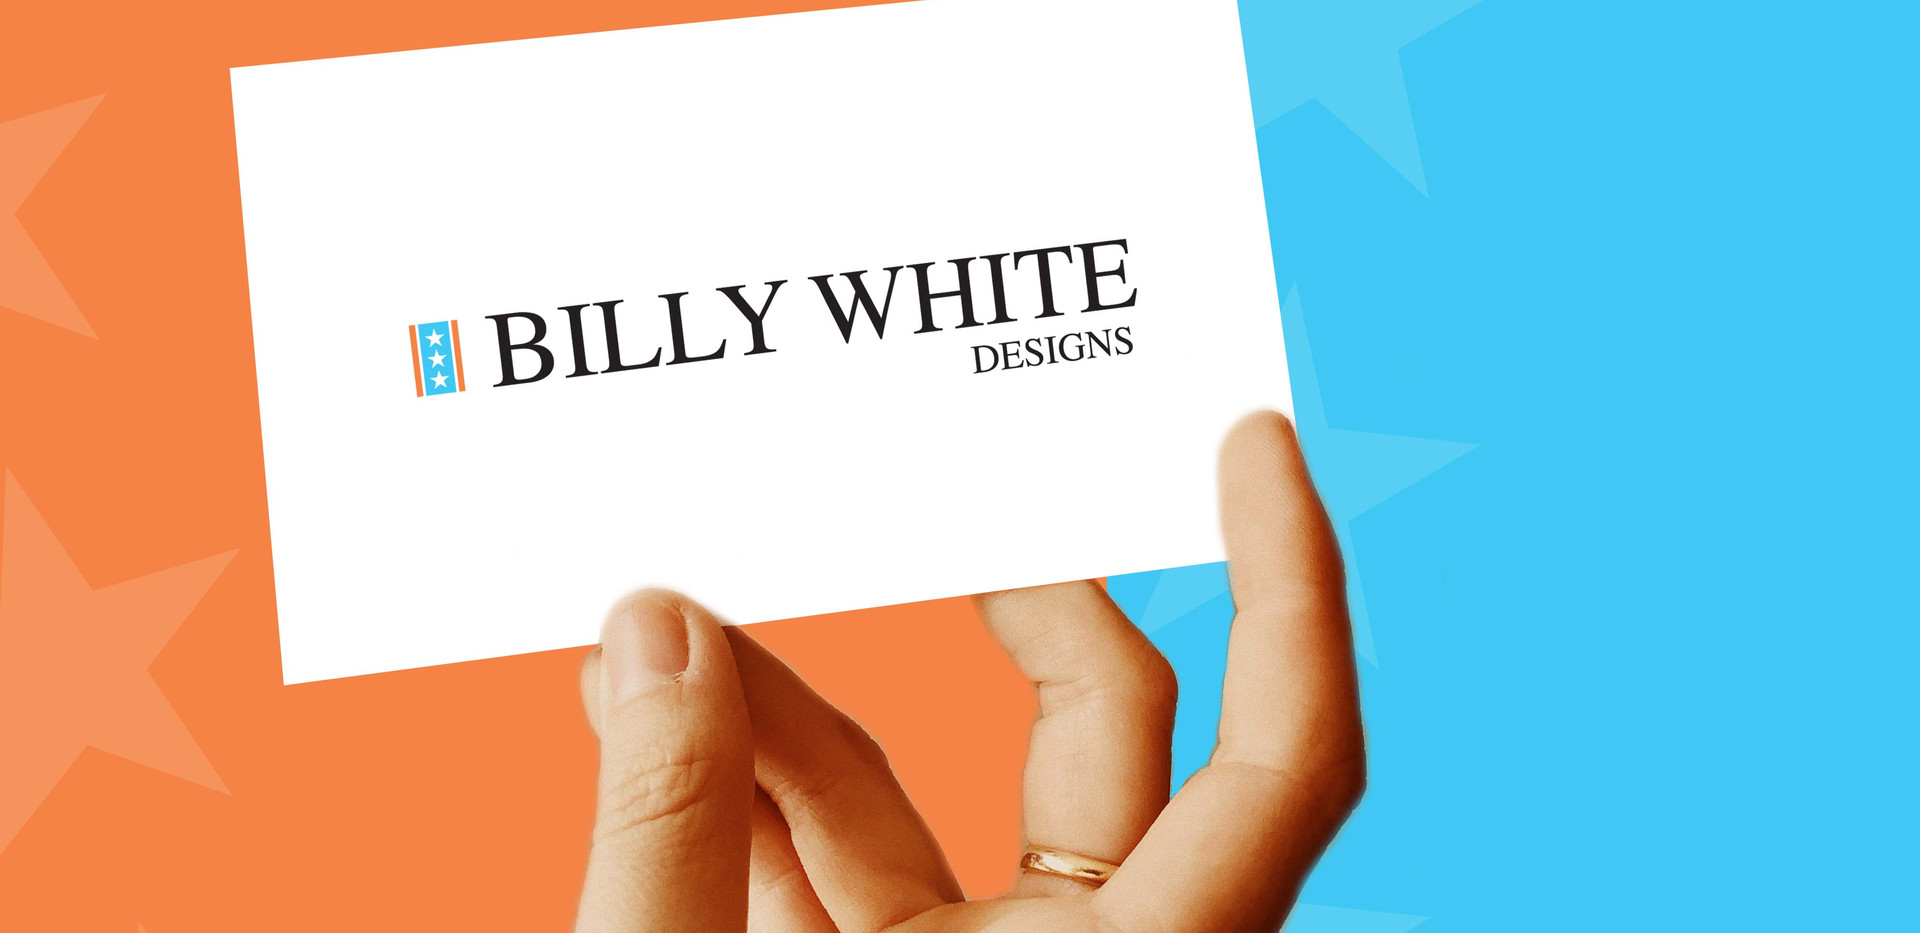 Billy White Designs